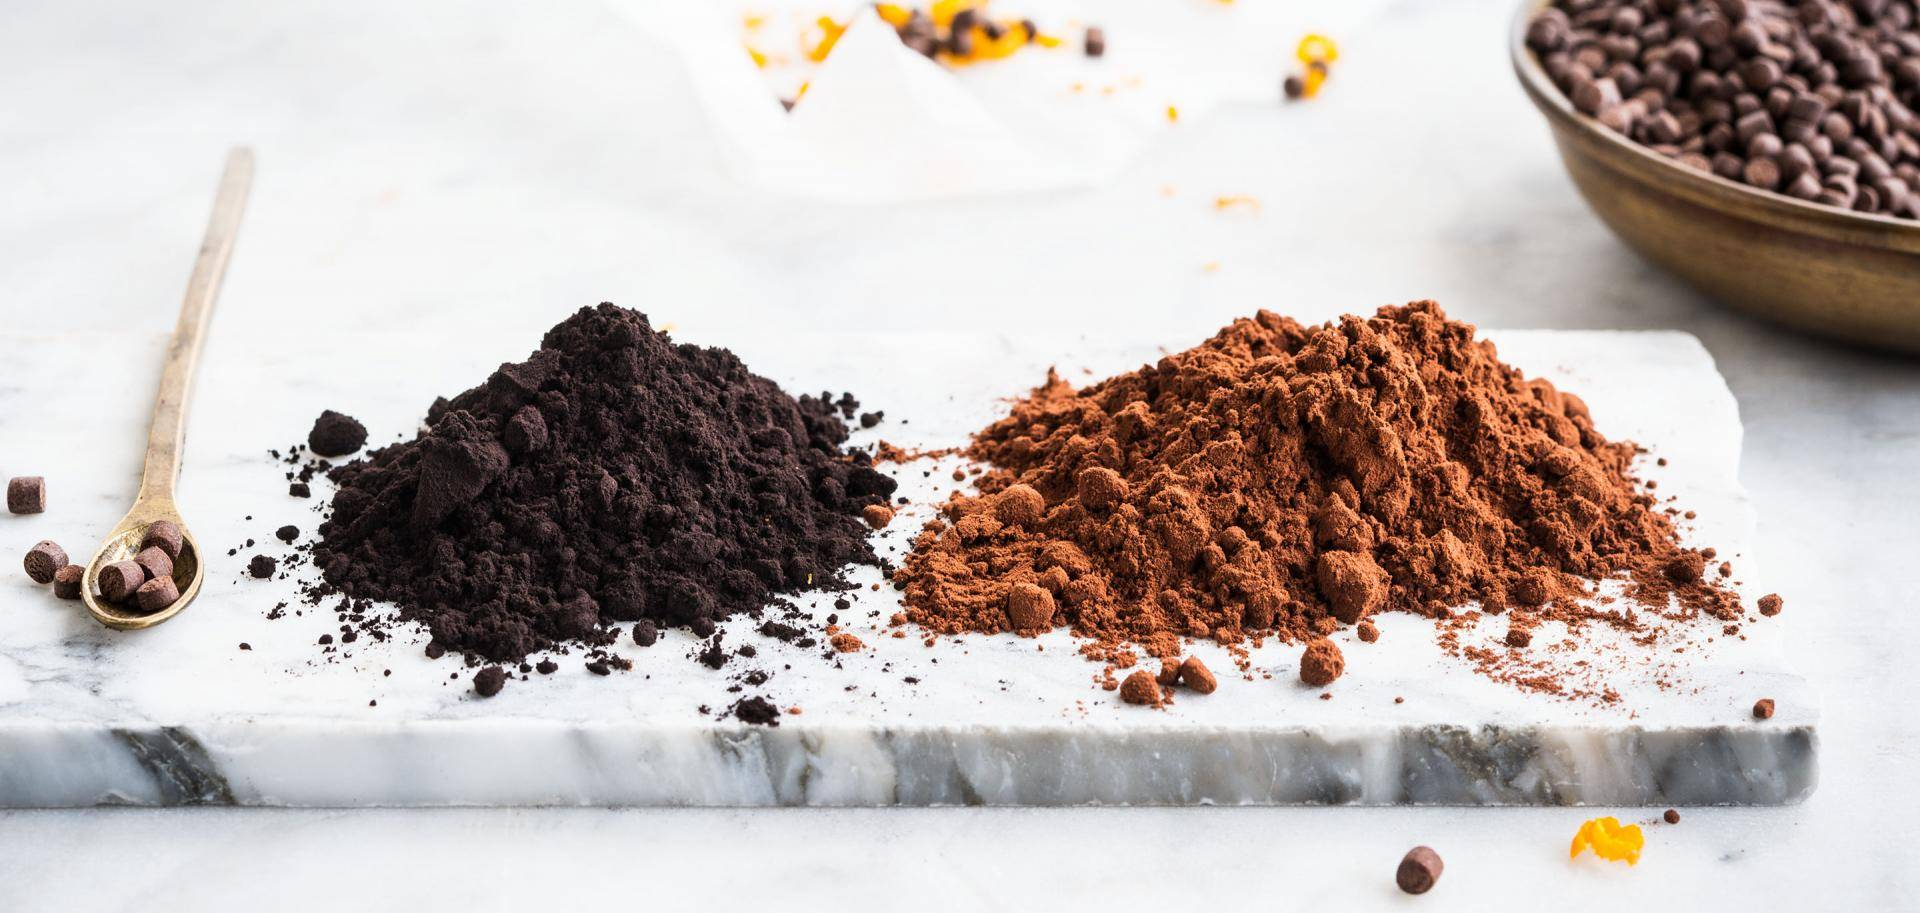 Bensdorp Single origin cocoa powders